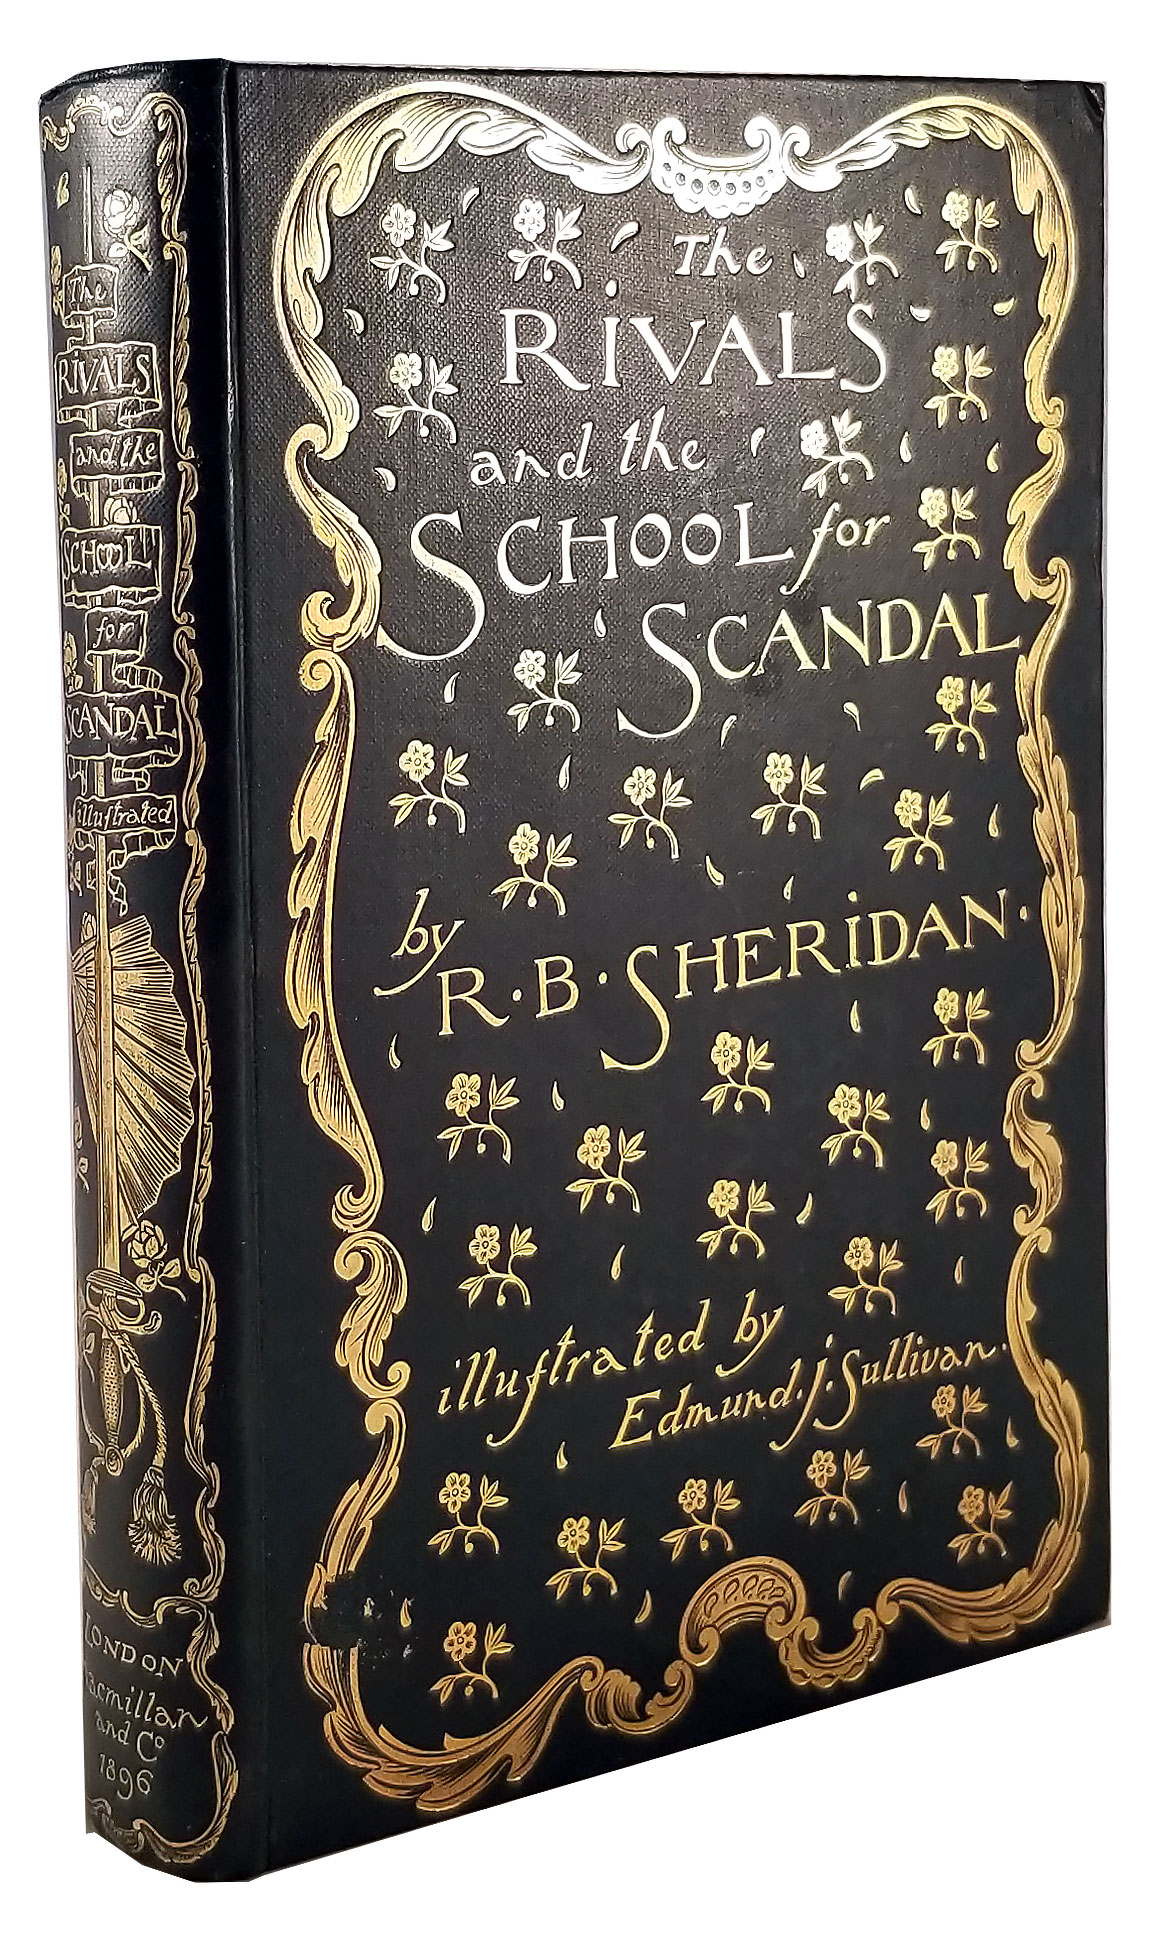 Image for THE SCHOOL FOR SCANDAL AND THE RIVALS